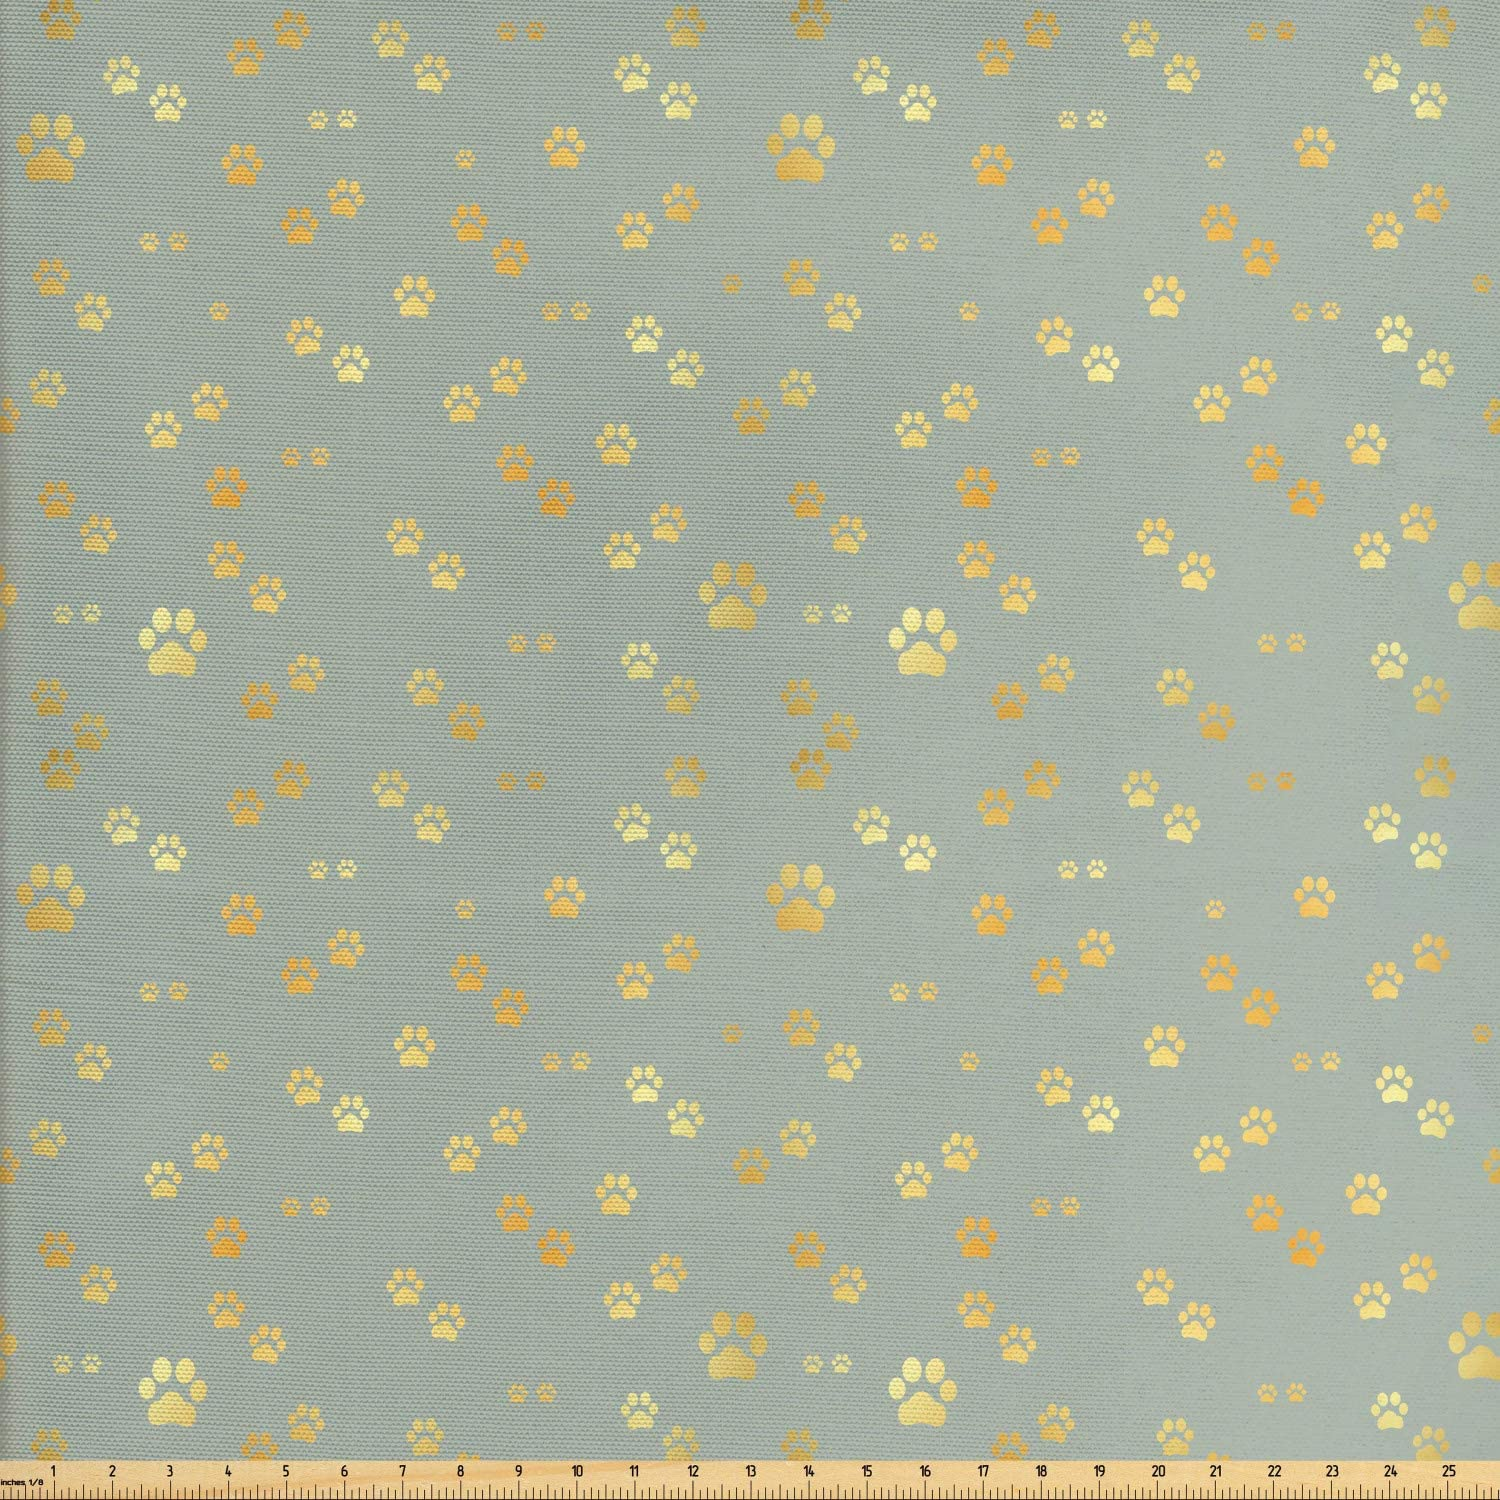 Ambesonne Paw Print Fabric by The Yard, Minimalist Themed Animal Pattern of Dog Pet Foot Marks Stains, Decorative Fabric for Upholstery and Home Accents, 1 Yard, Green Orange